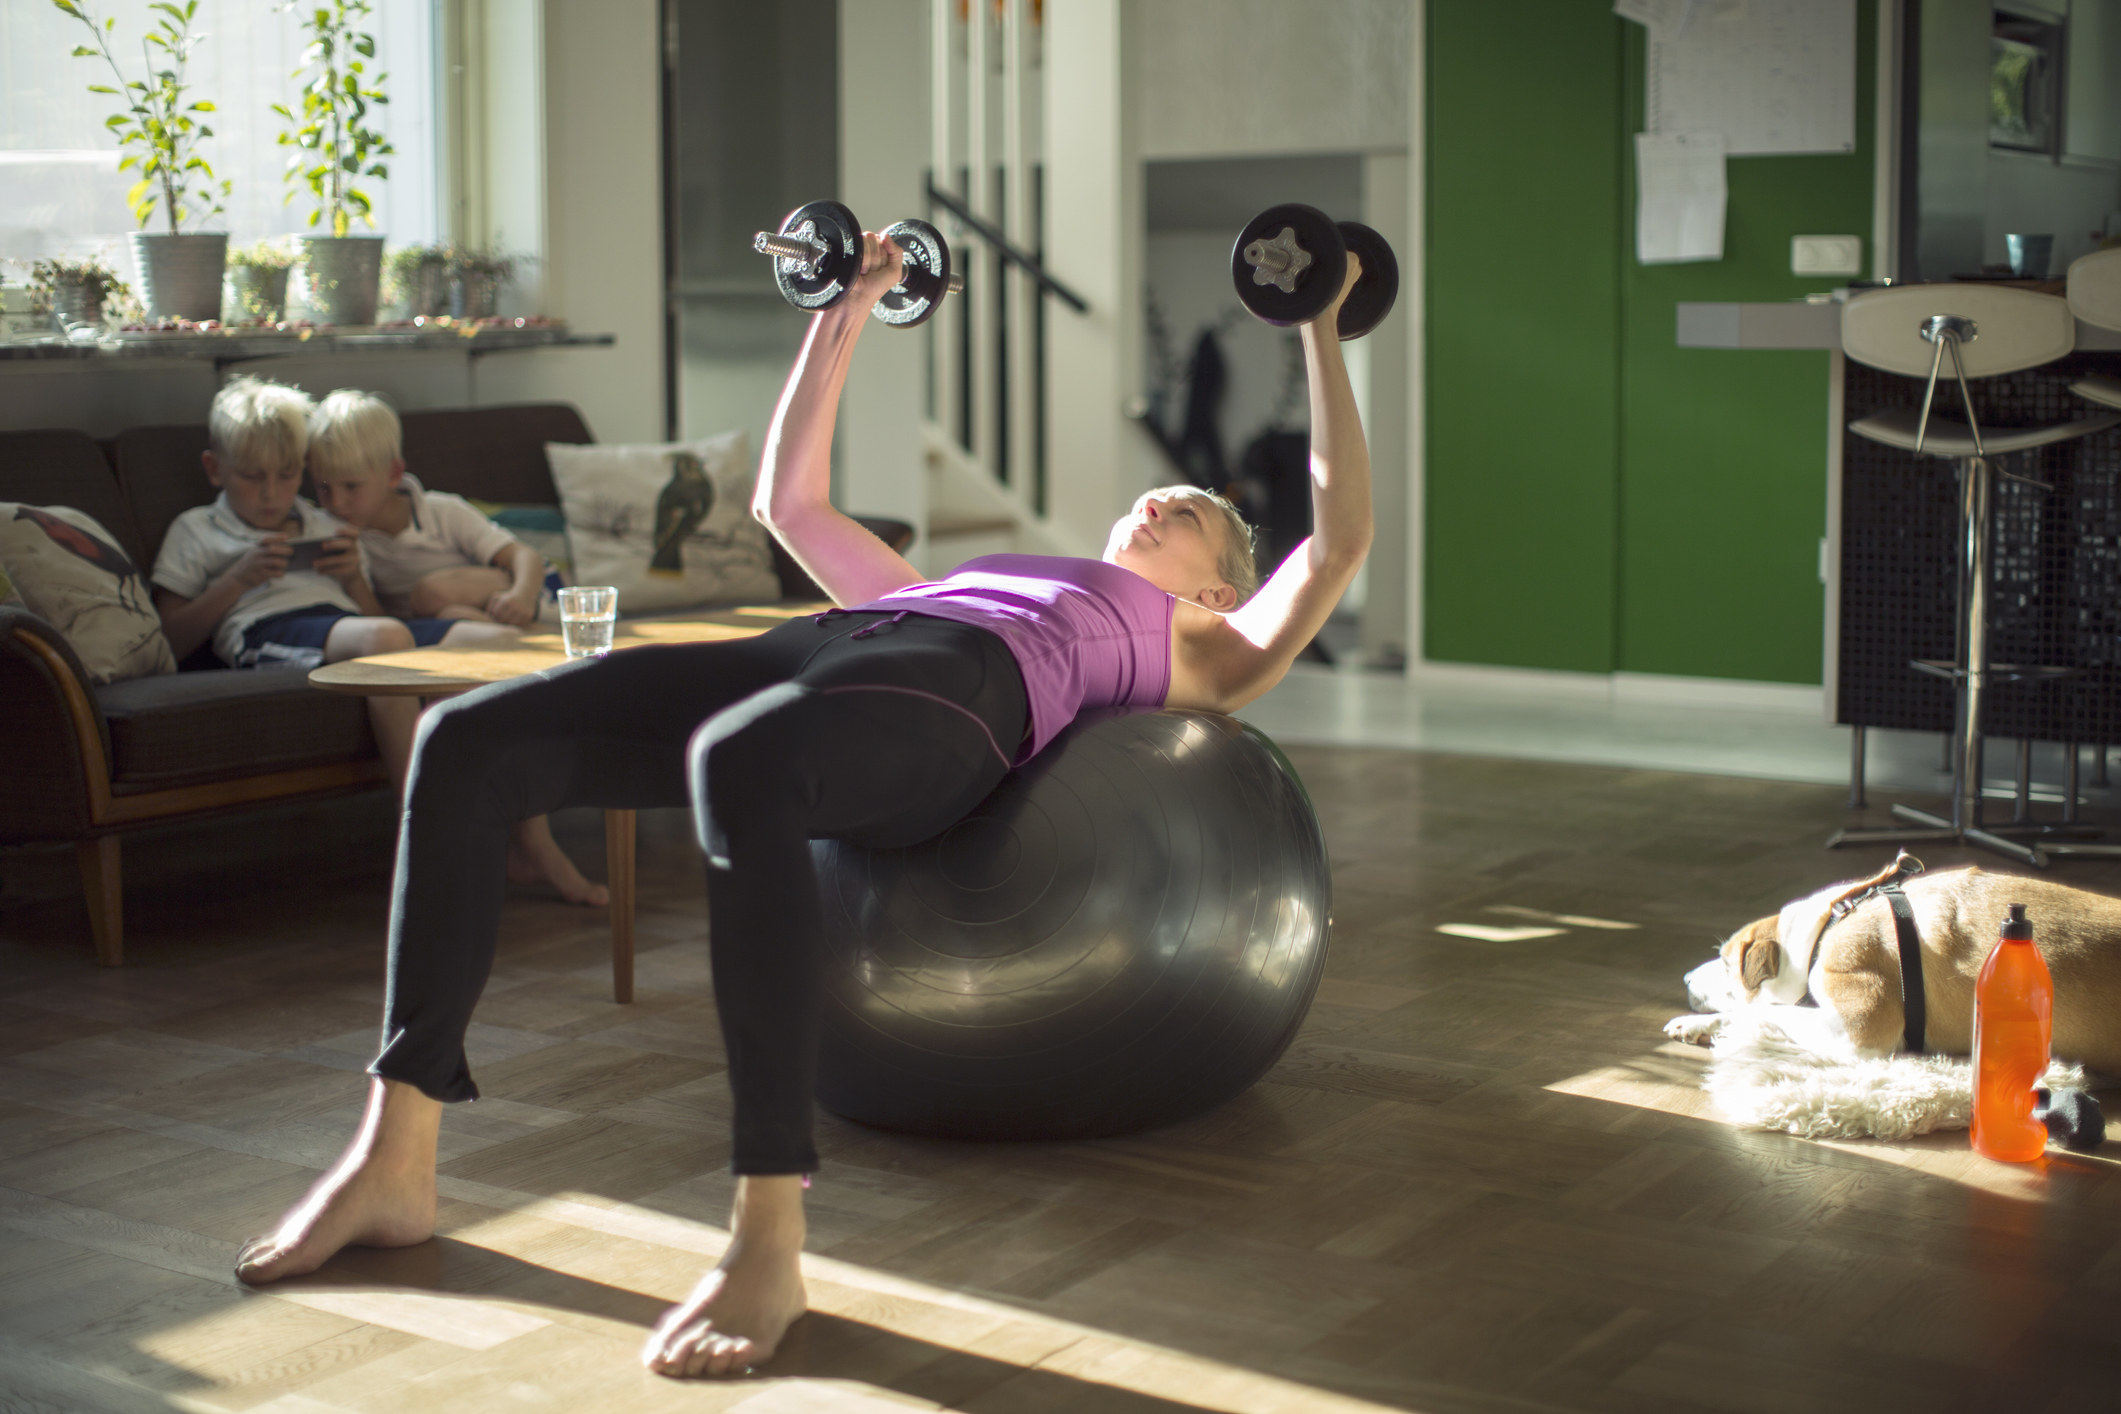 A person using exercise equipment at home in their living room